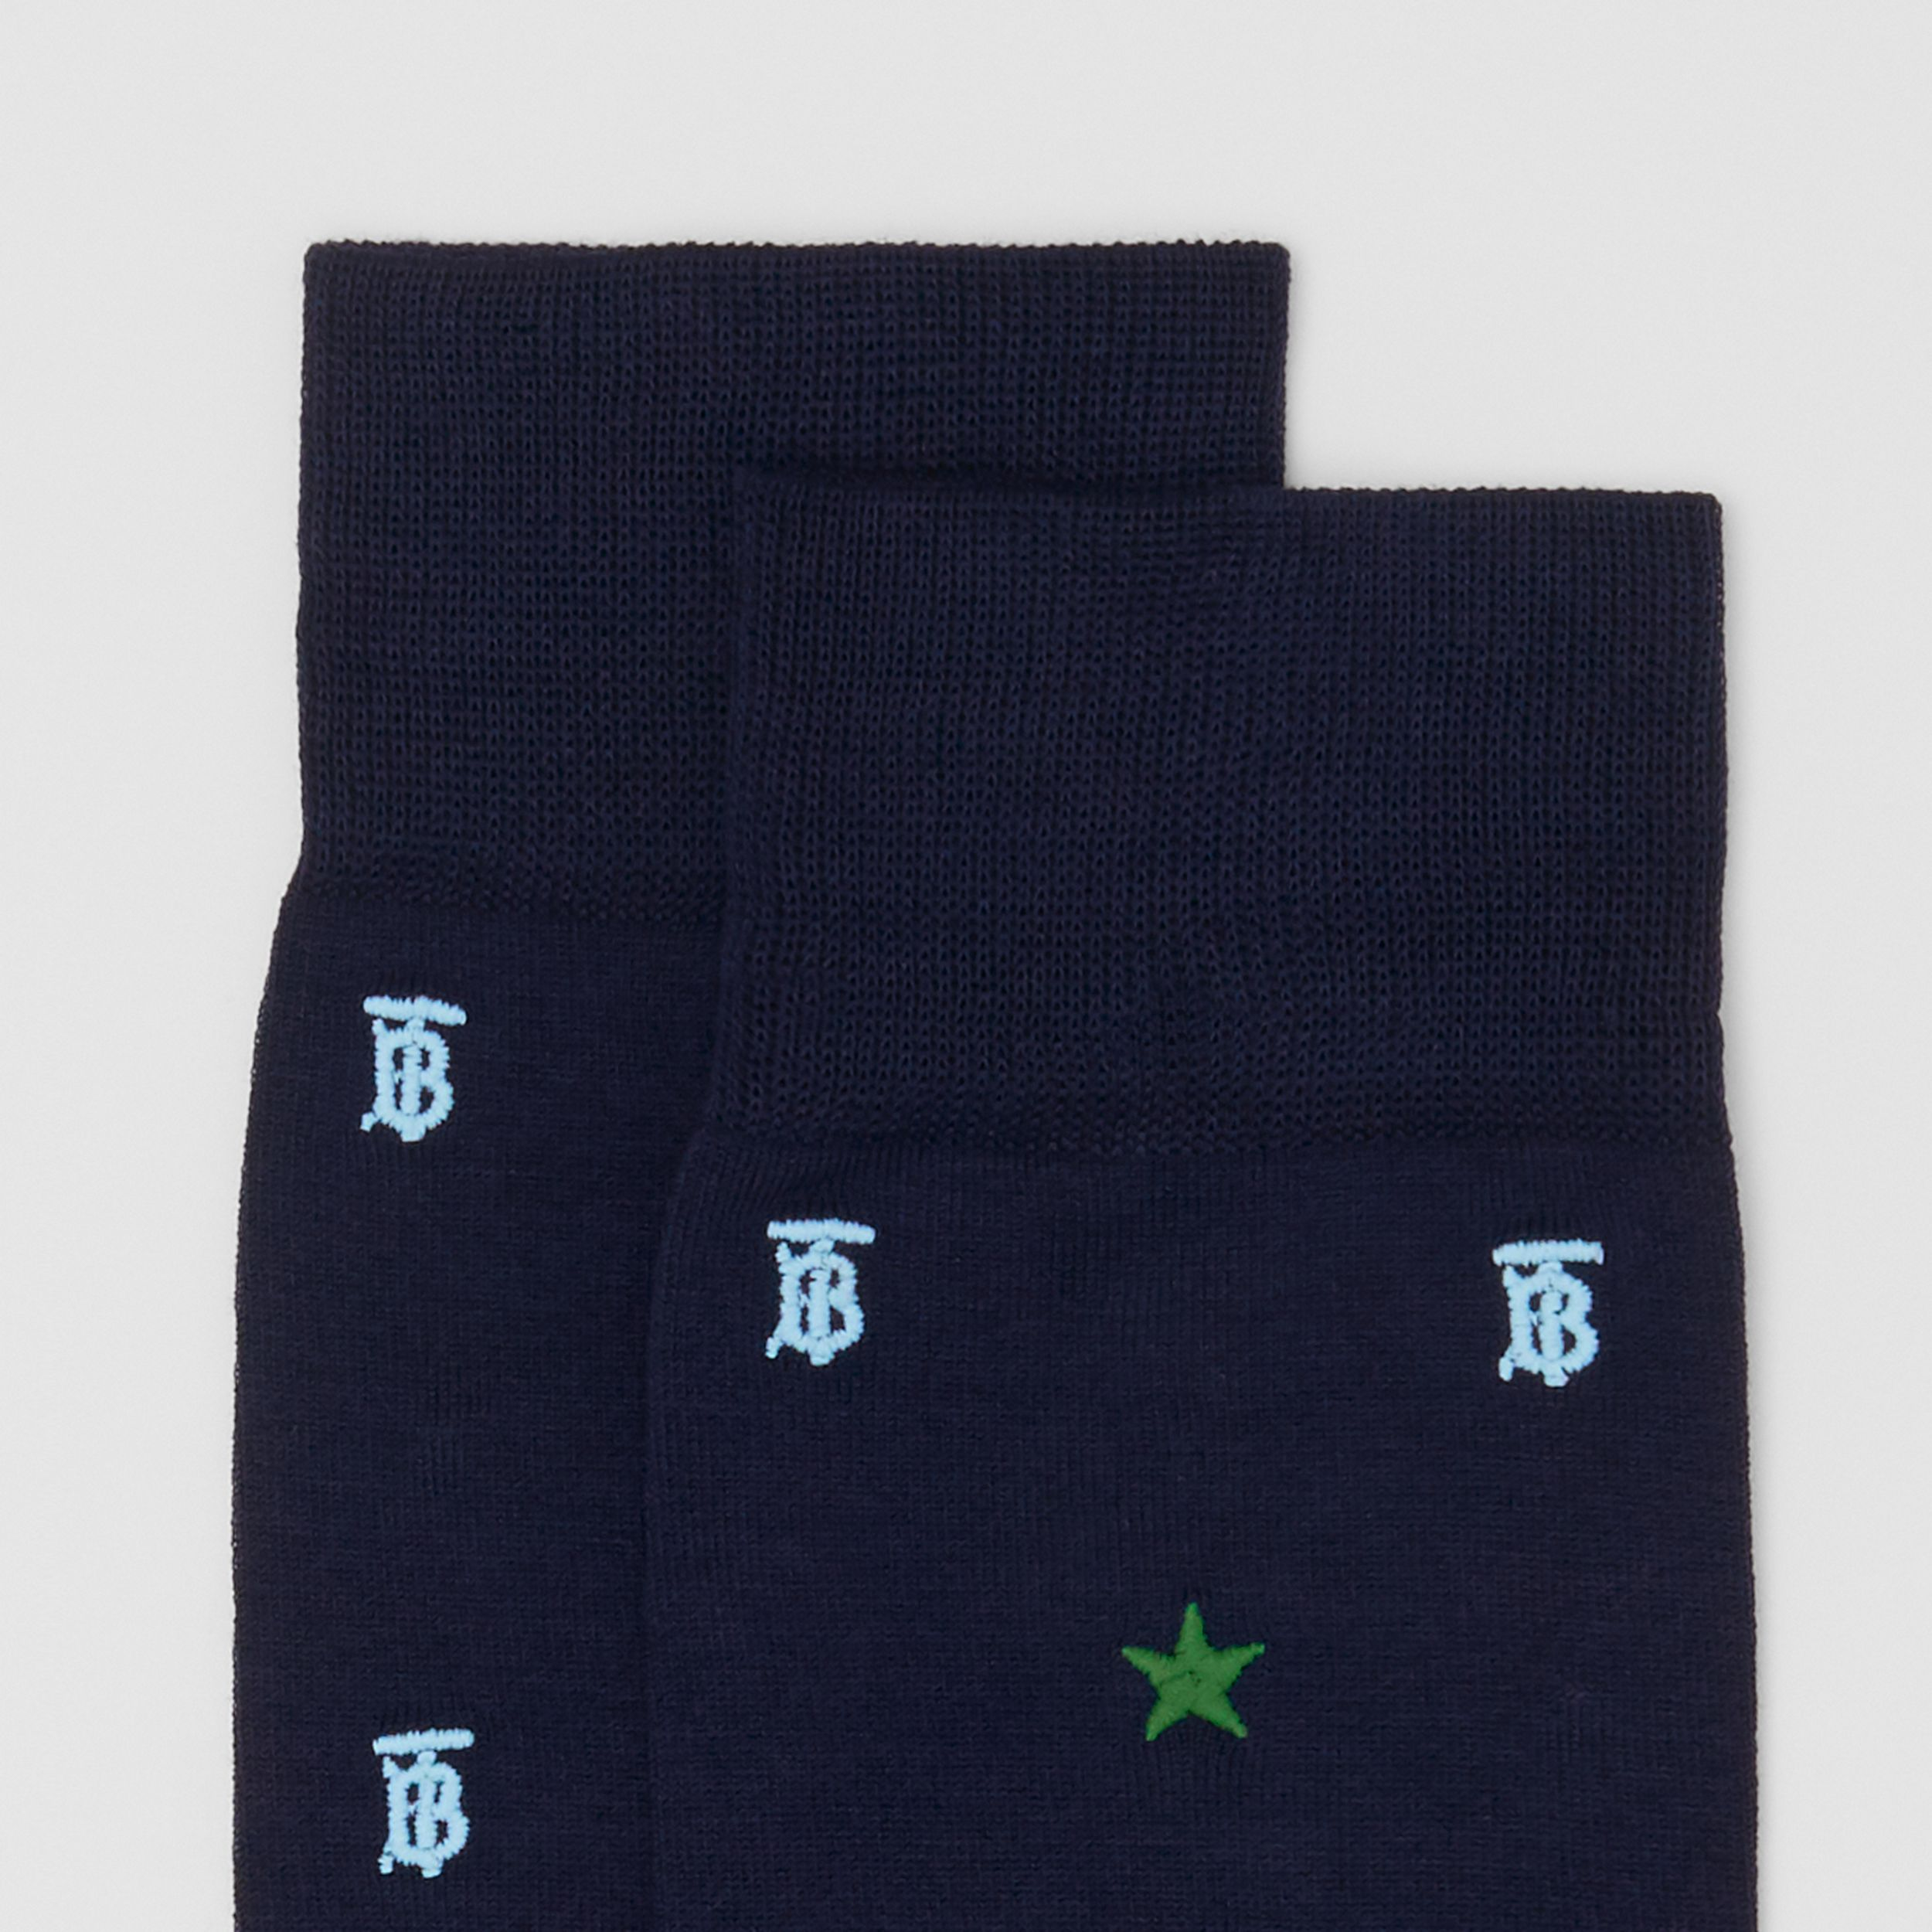 Star and Monogram Motif Cotton Blend Socks in Navy | Burberry - 2